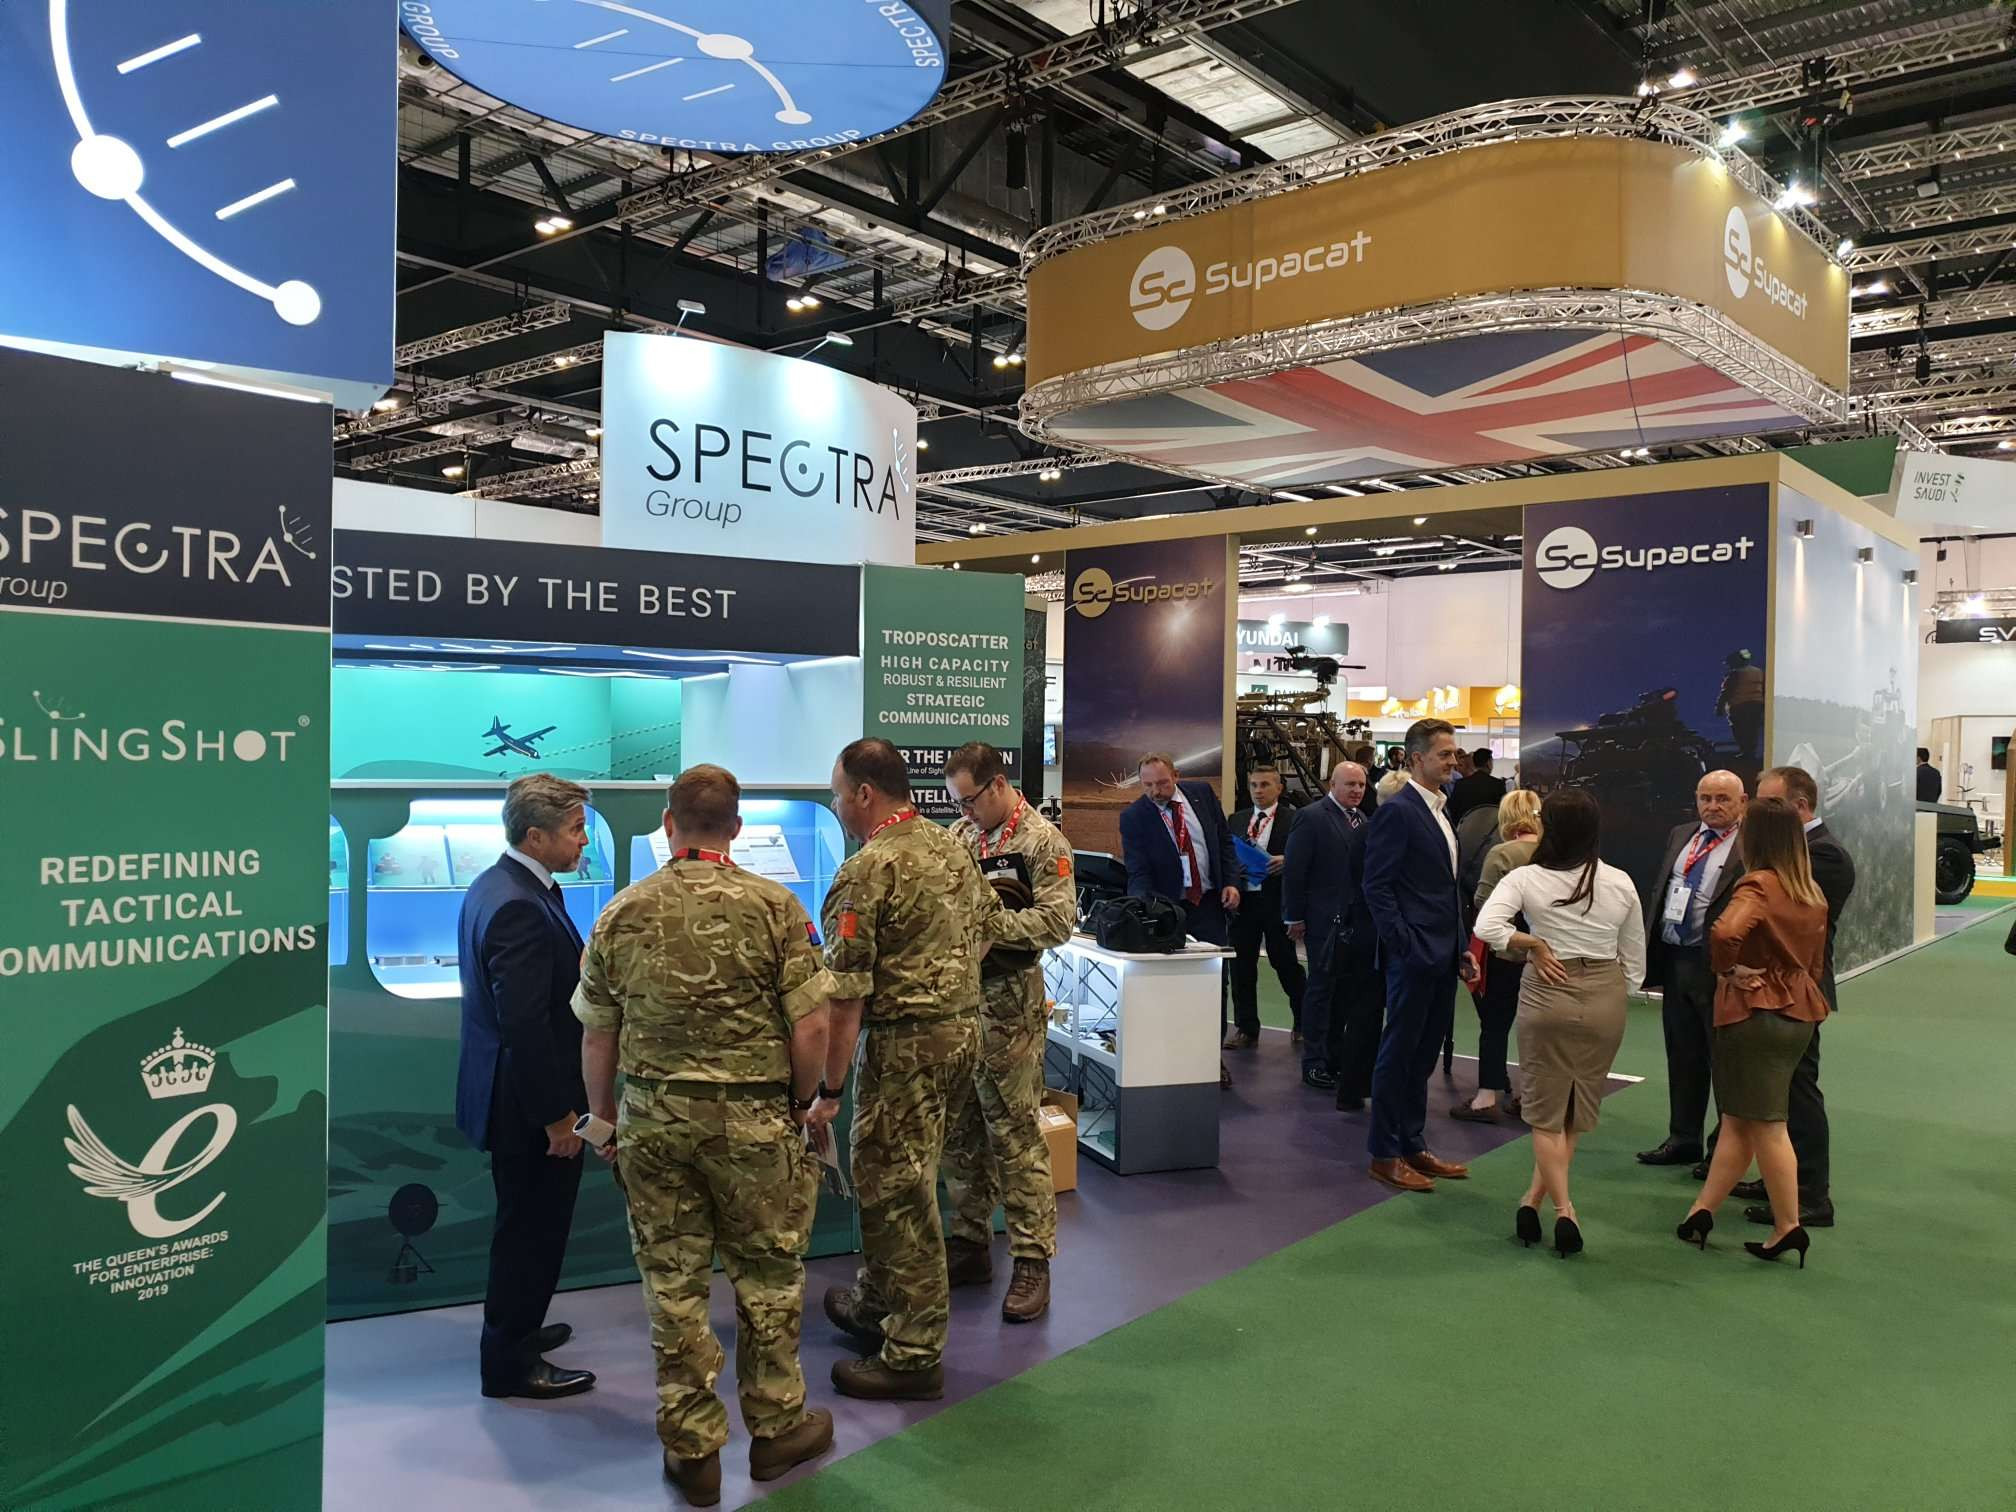 Spectra Group DSEI 2019 London